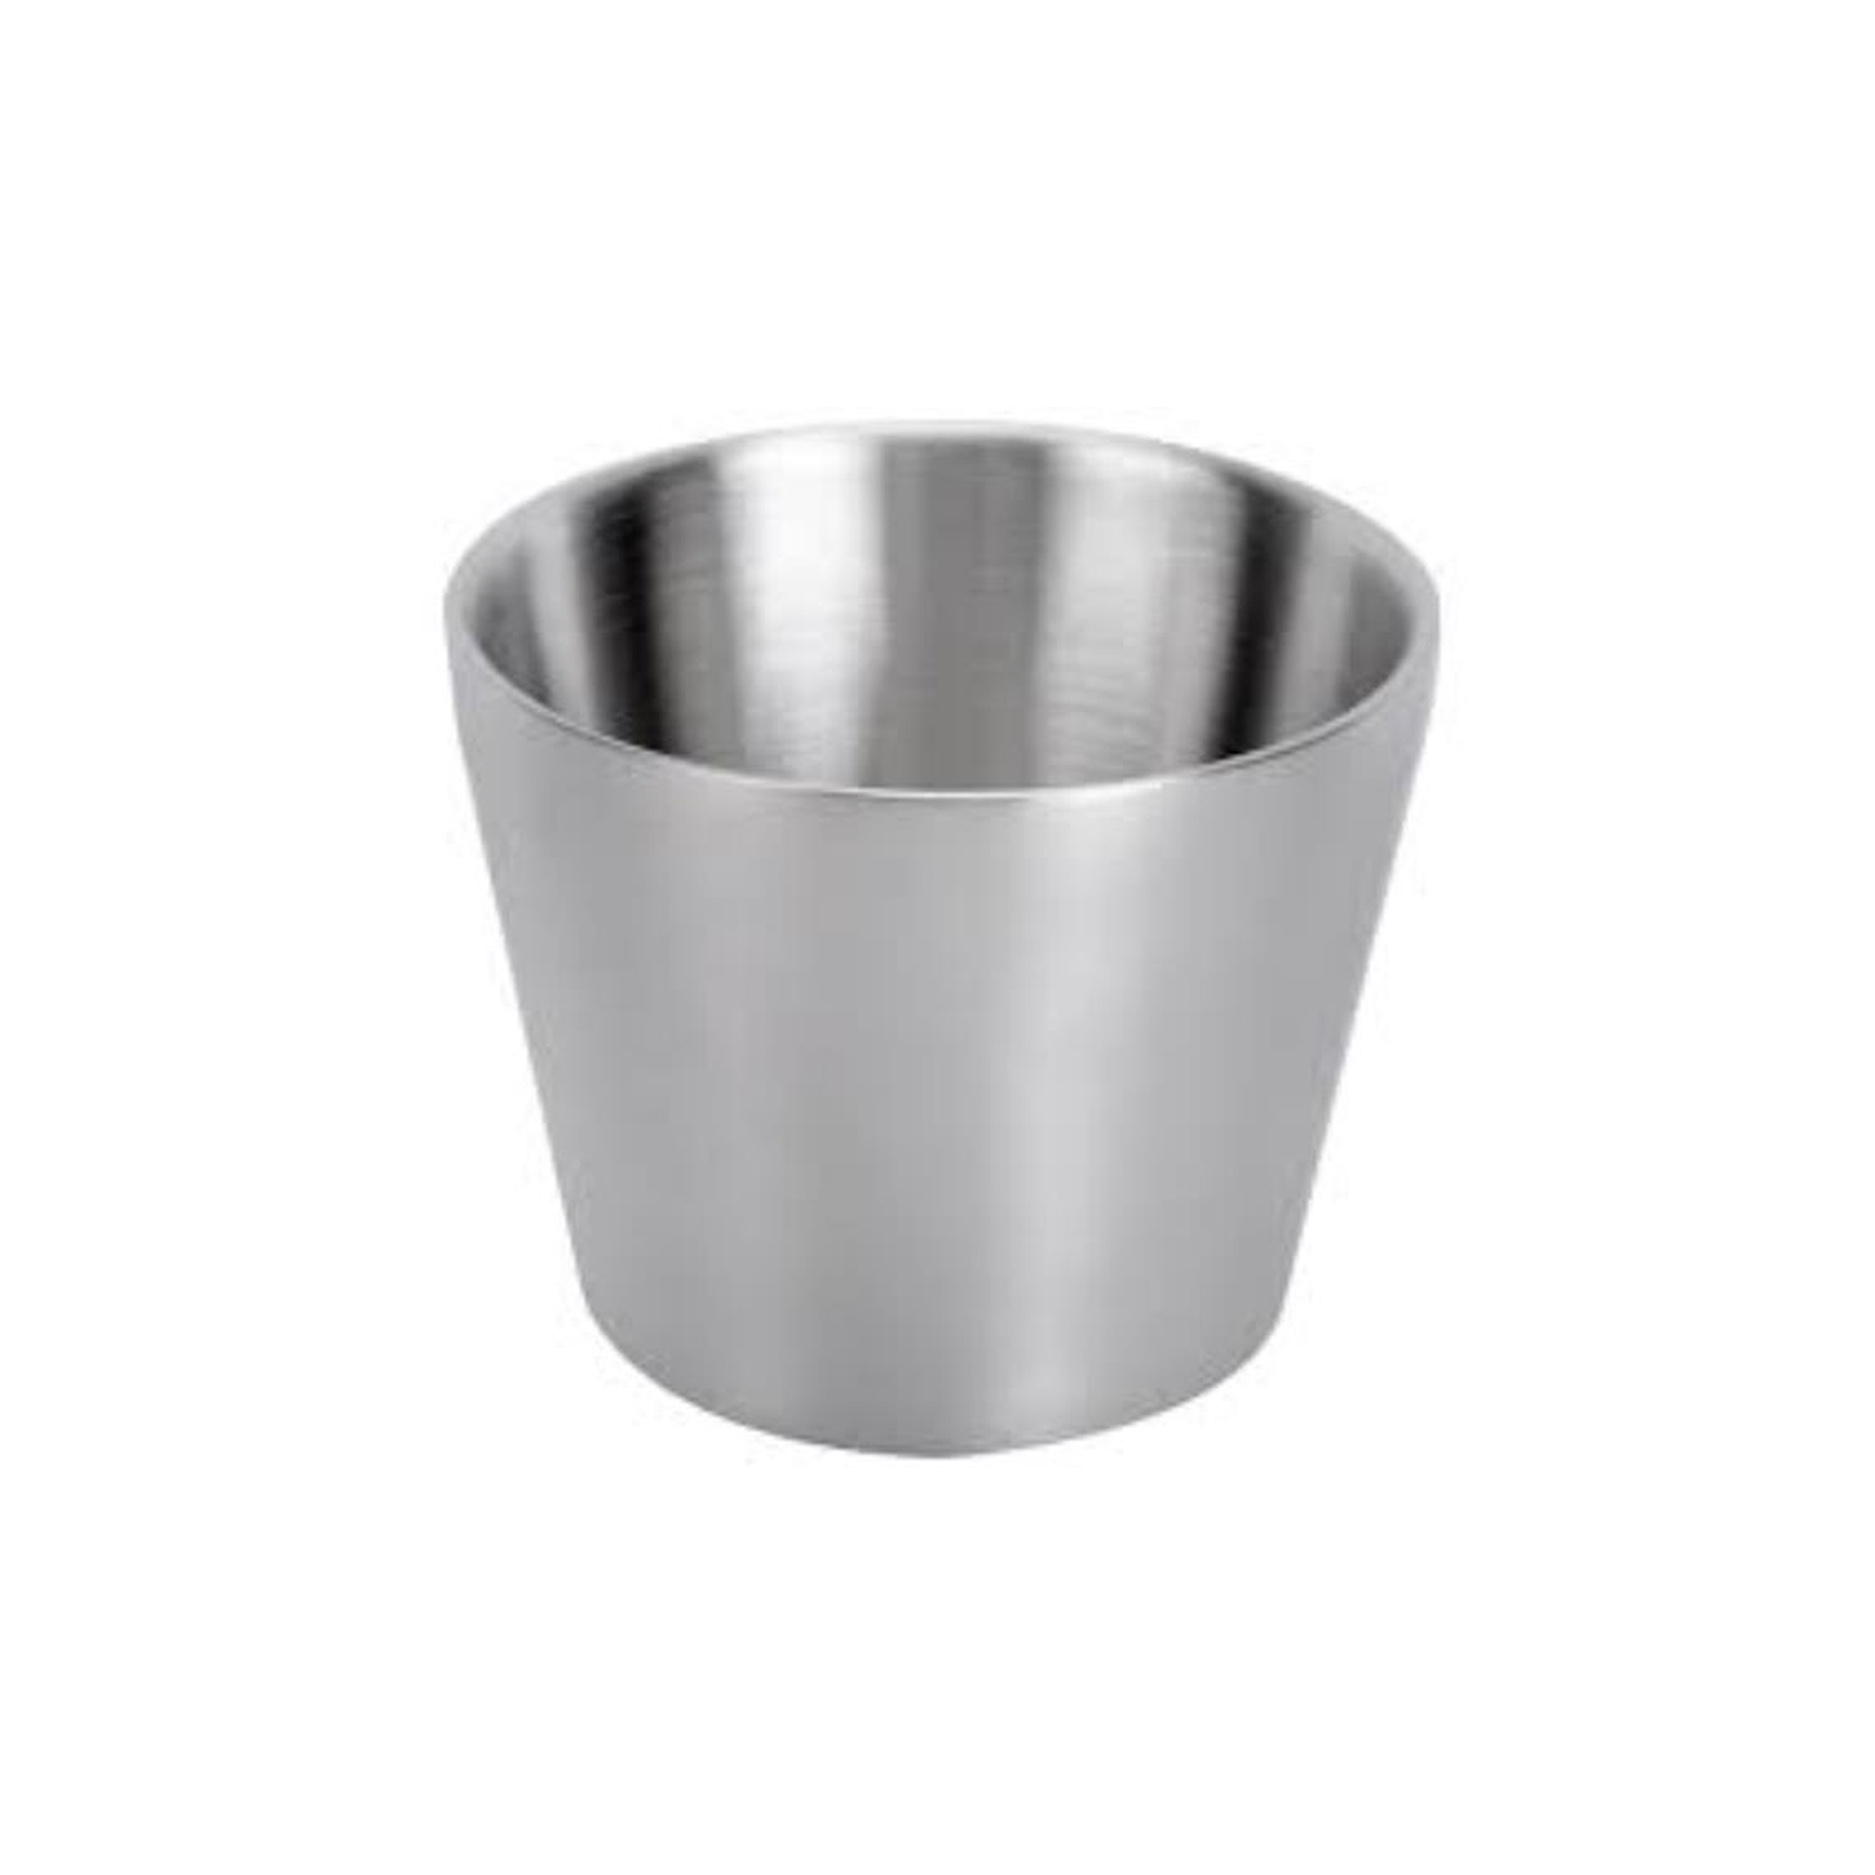 double walled sauce cup 8.5oz